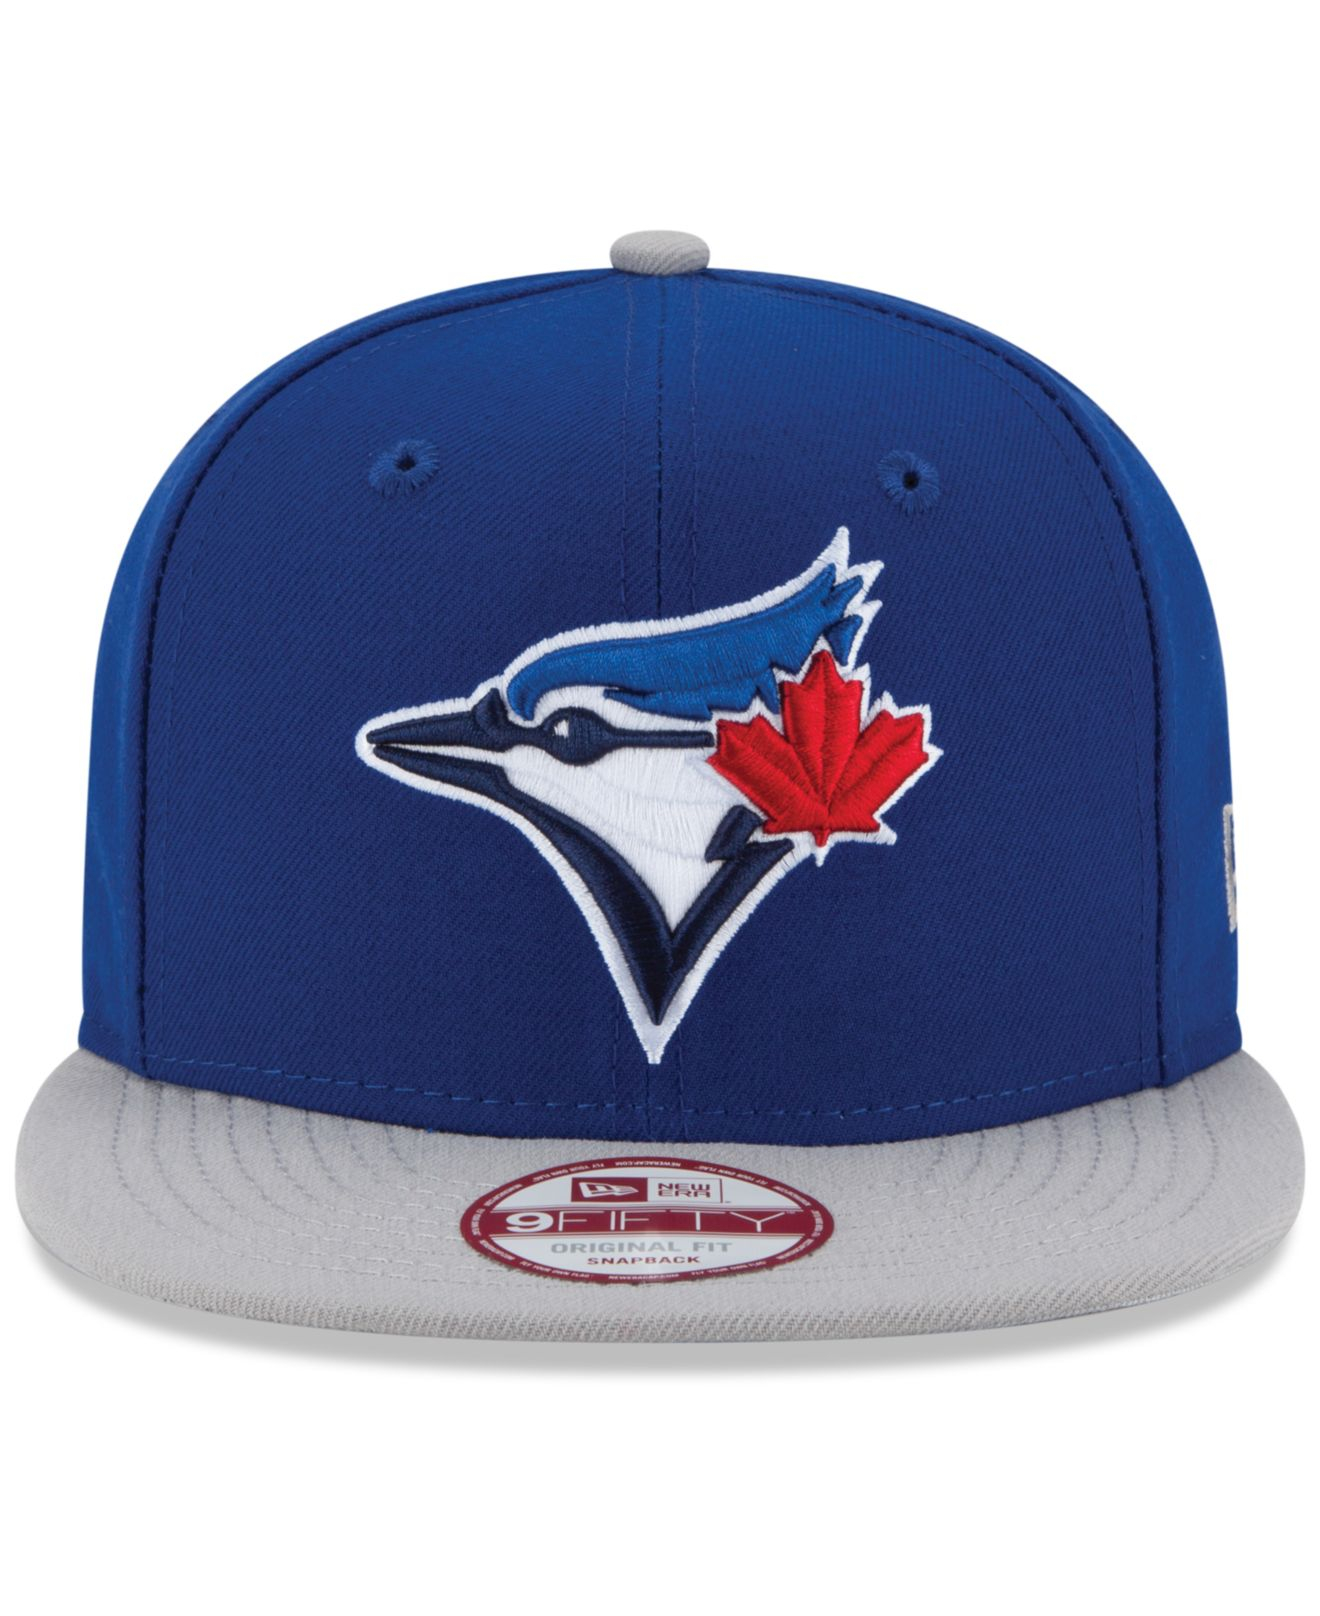 49f8e95dab0 Lyst - Ktz Toronto Blue Jays 9Fifty Snapback Cap in Blue for Men